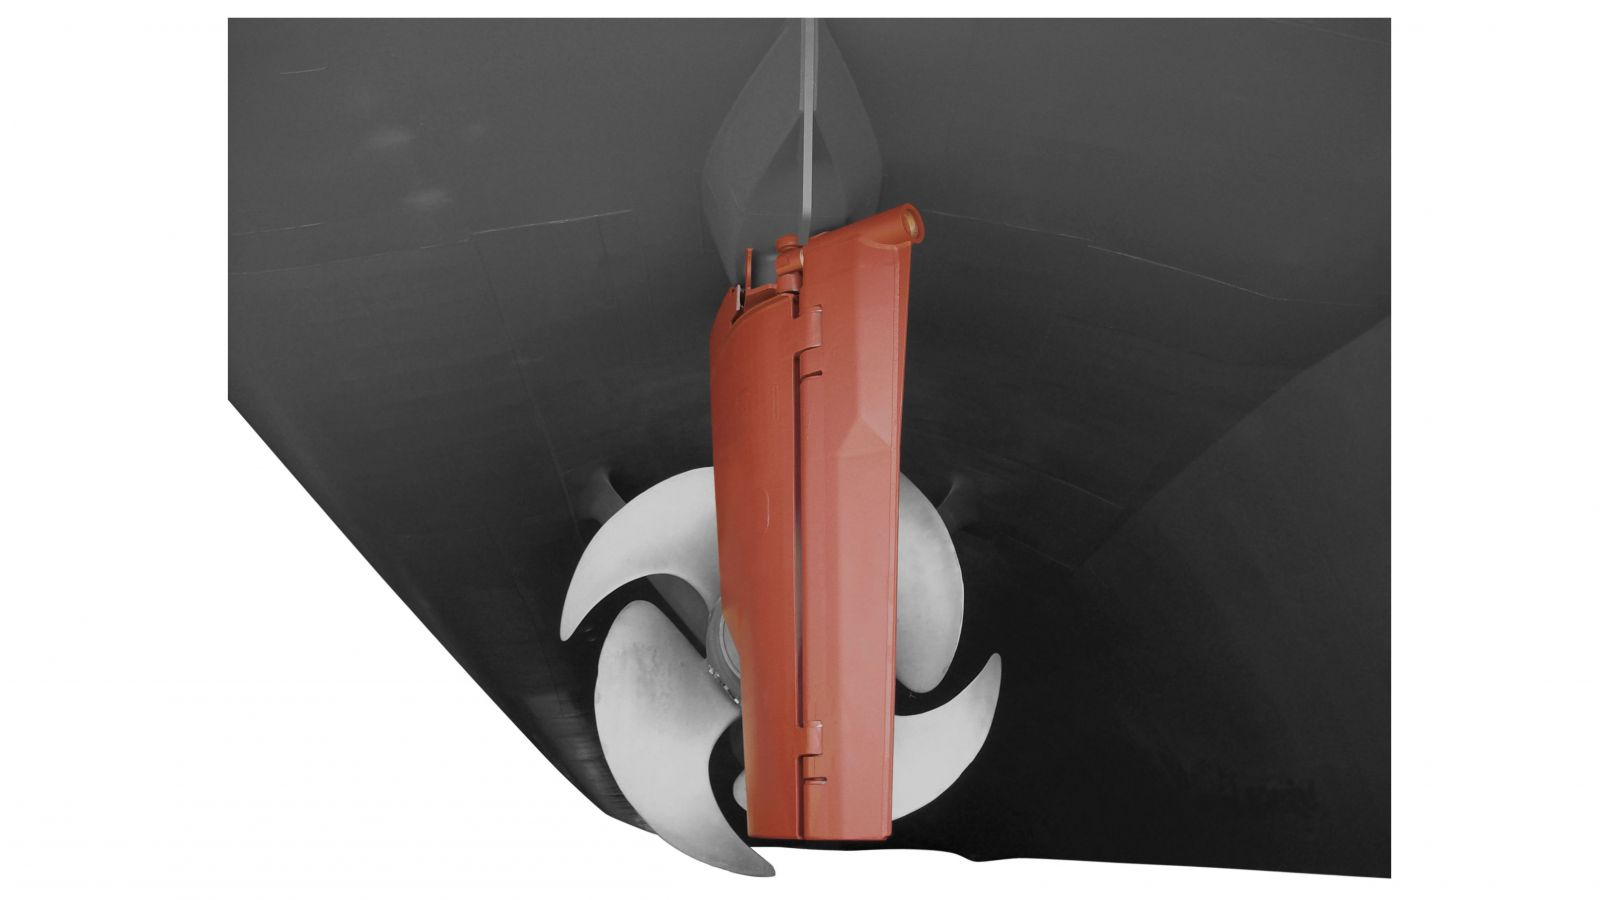 Becker Flap Rudder Twisted (© Becker Marine Systems)